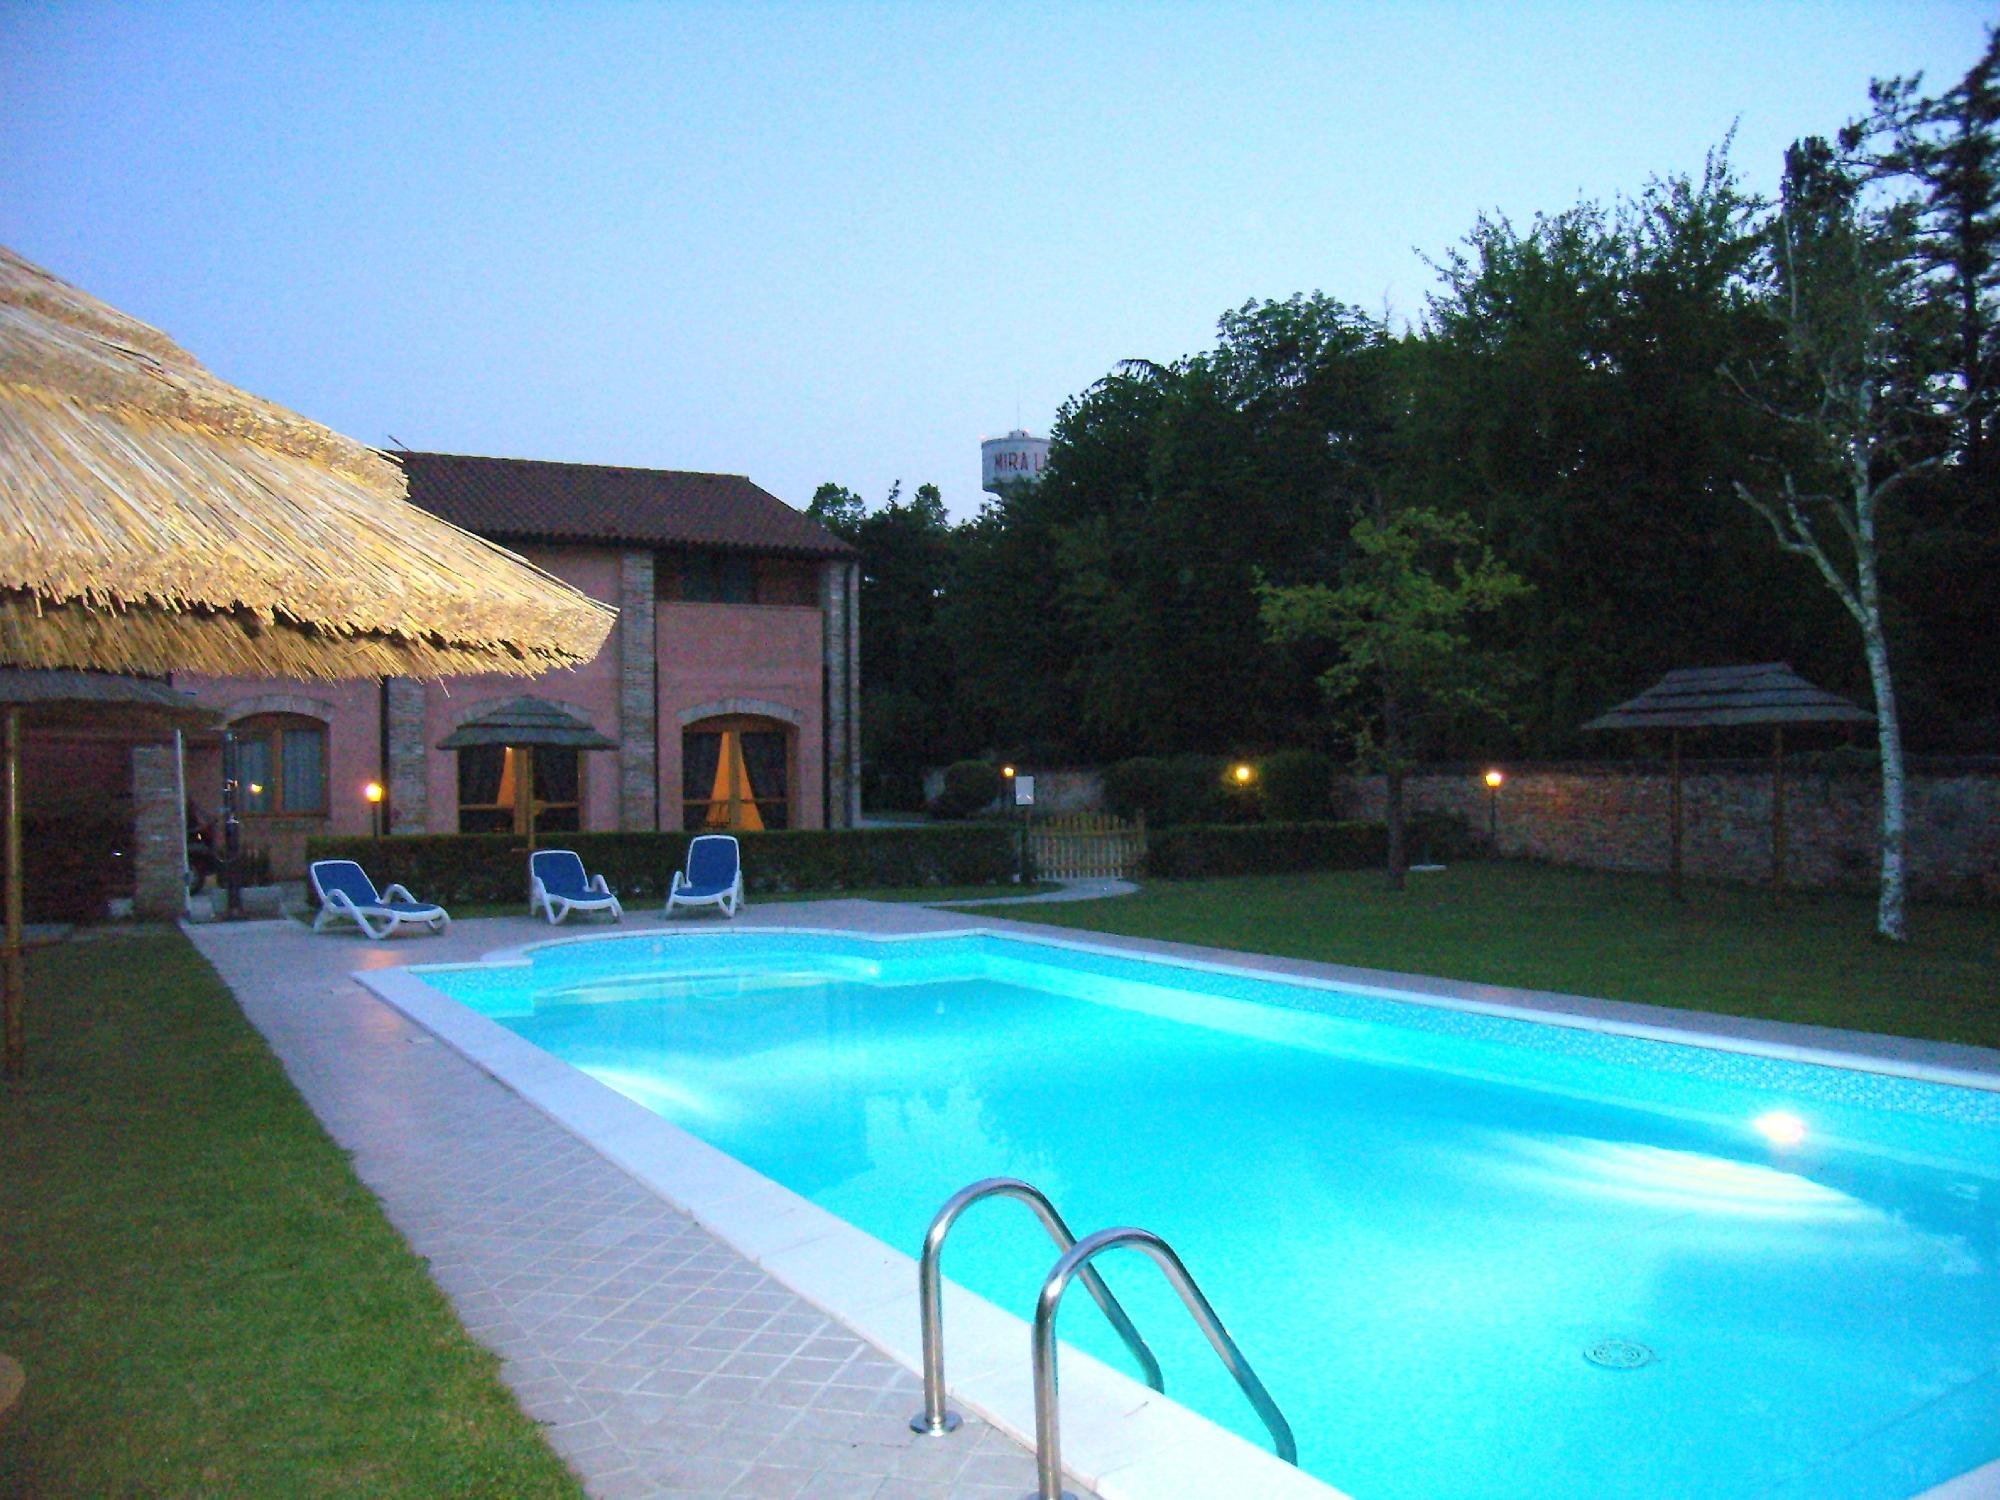 Mira Italy  City pictures : Hotel Isola di Caprera Mira, Italy Province of Venice UPDATED ...